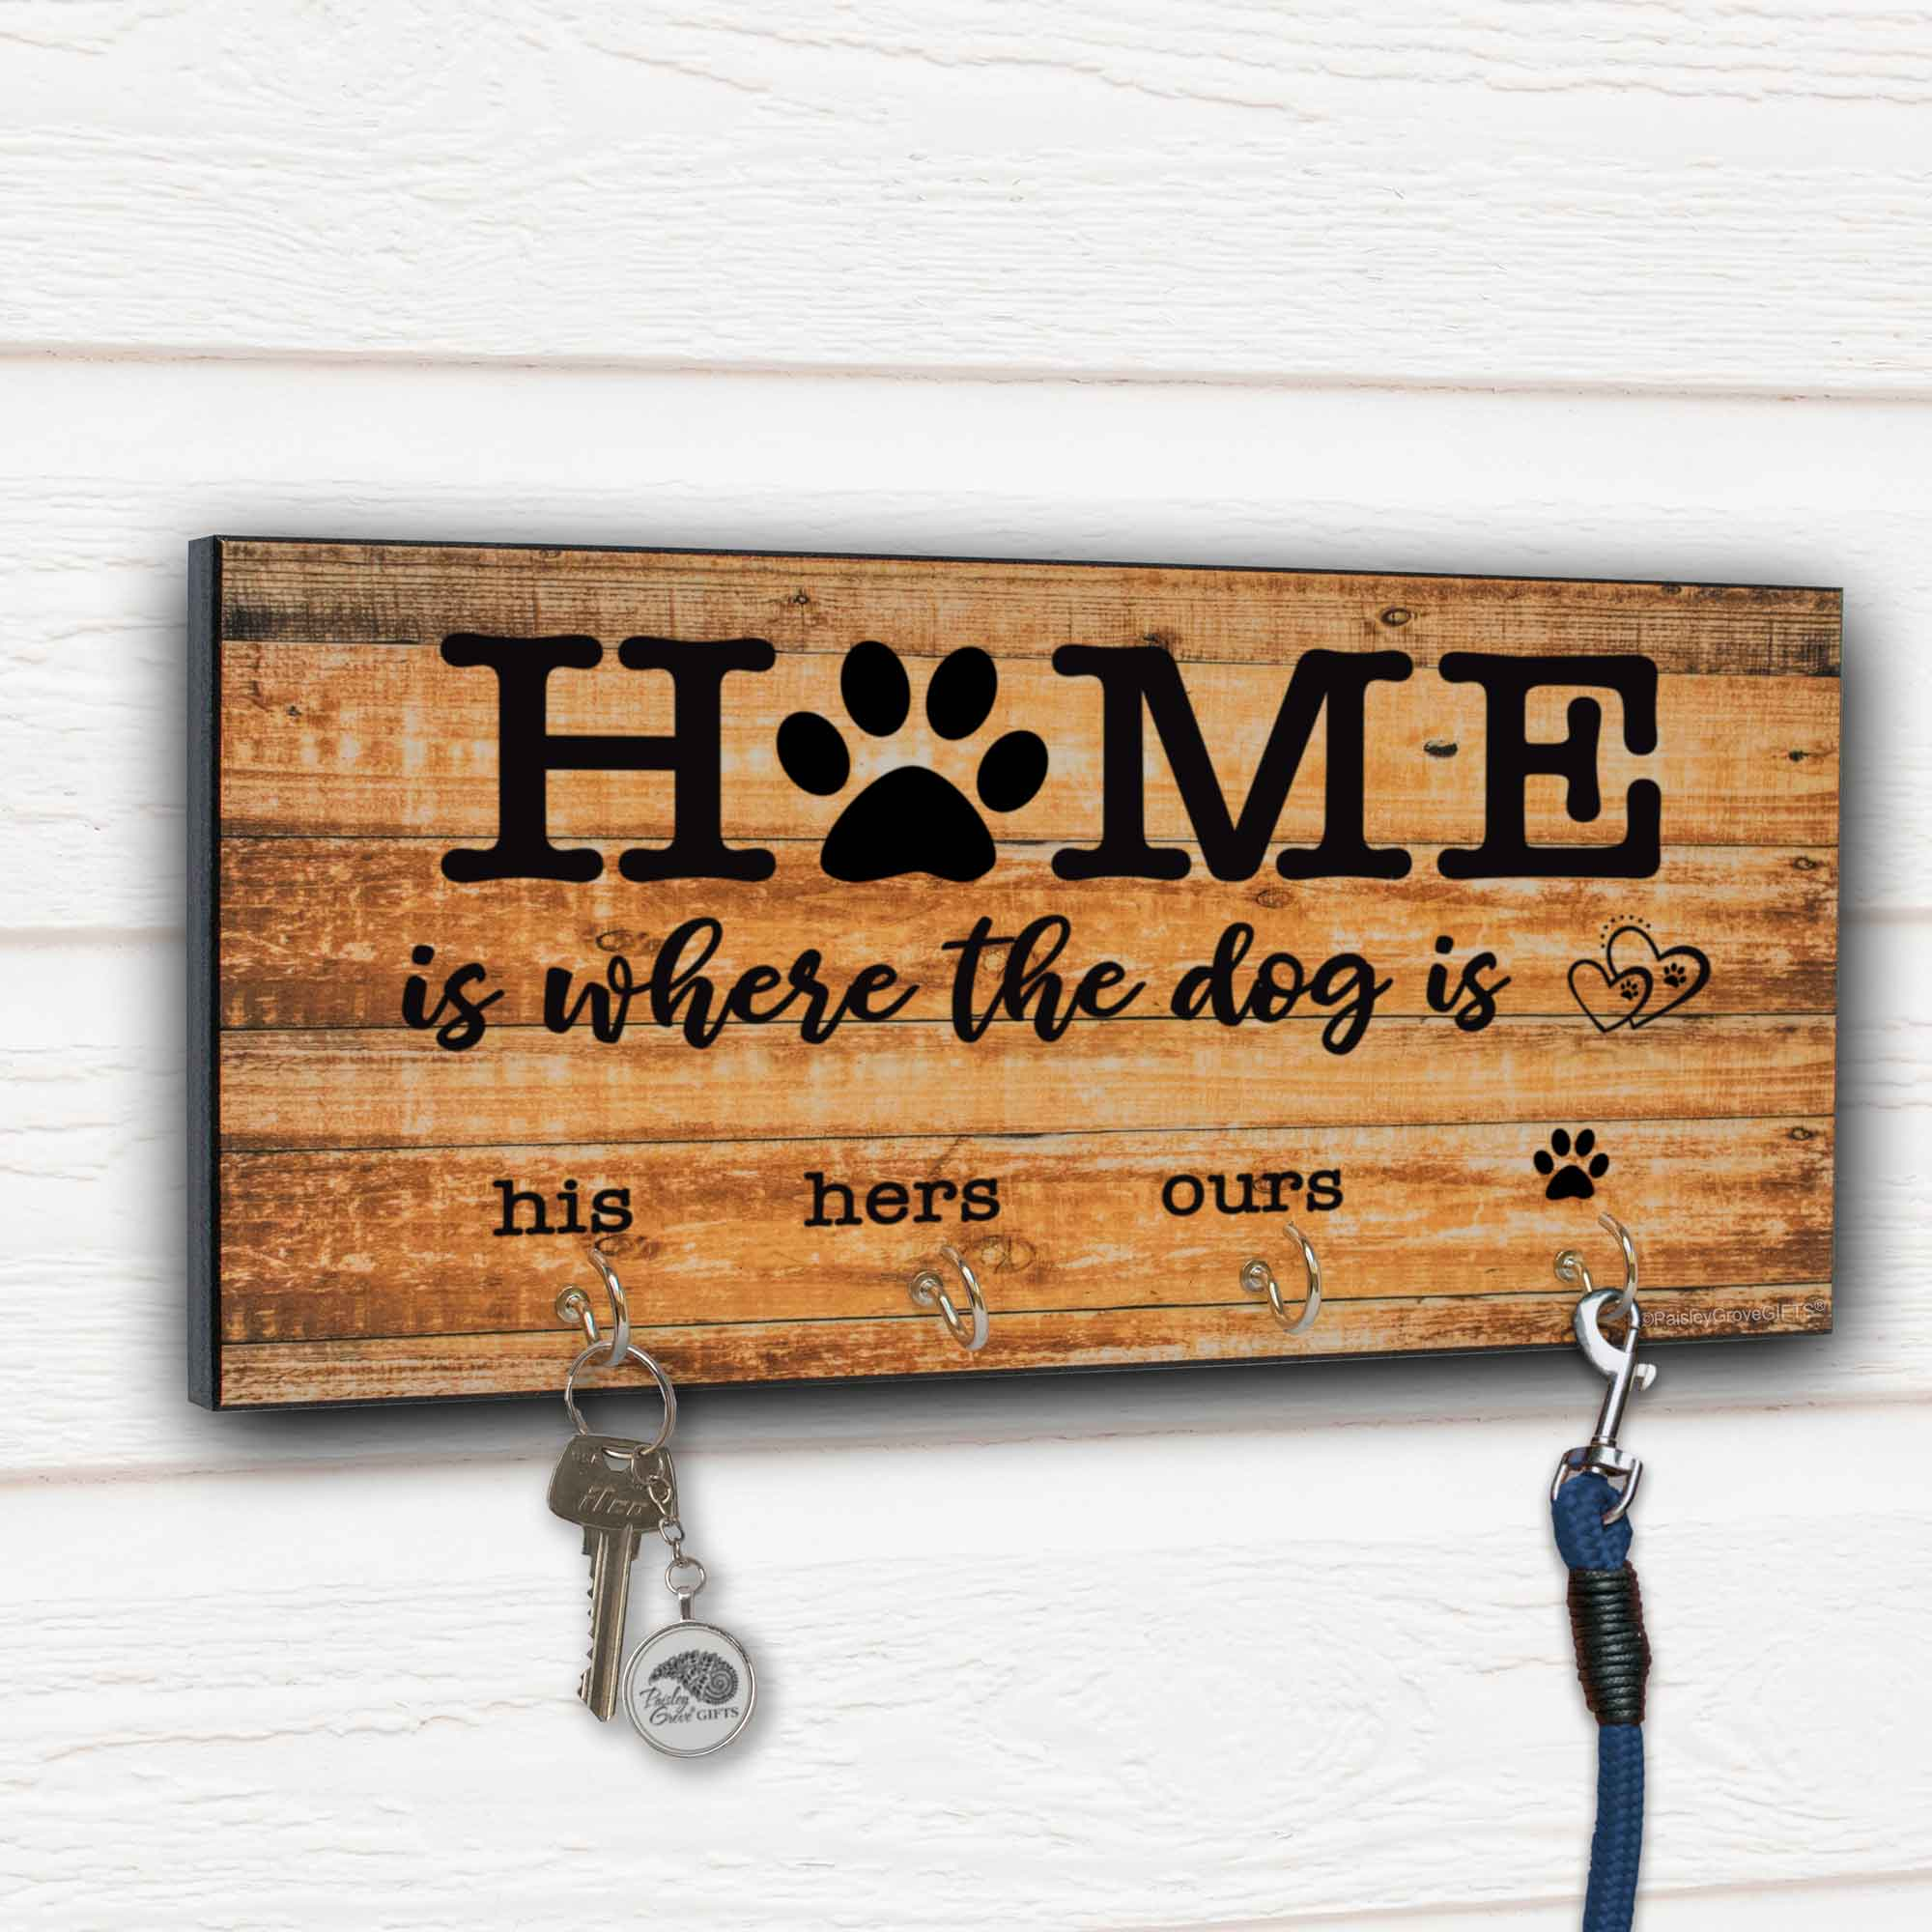 His Hers Ours Key Holder for Wall Leash Organizer | S307b